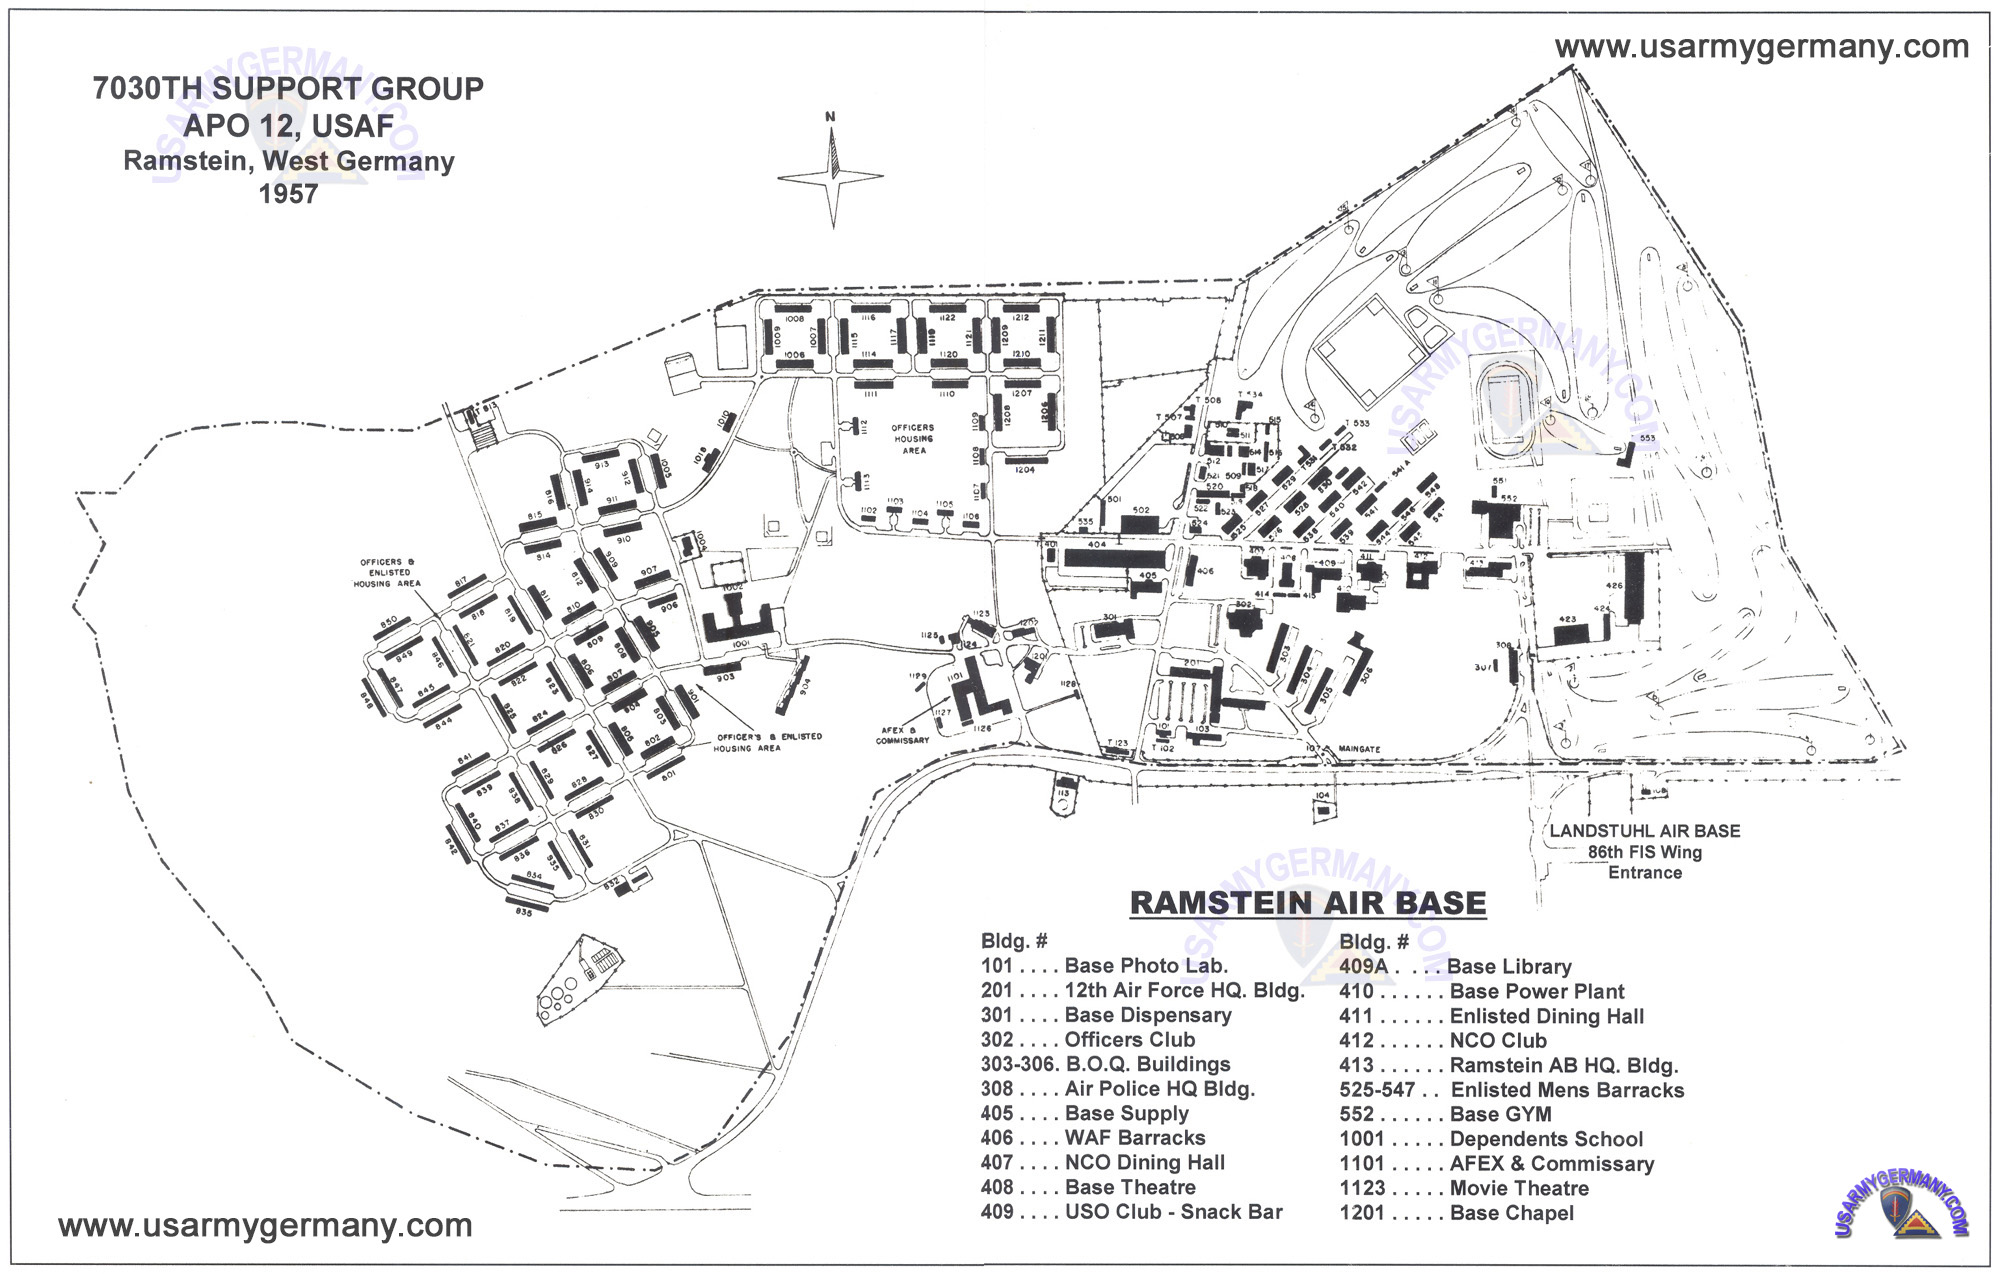 USAREUR Installation Maps - Ramstein AB